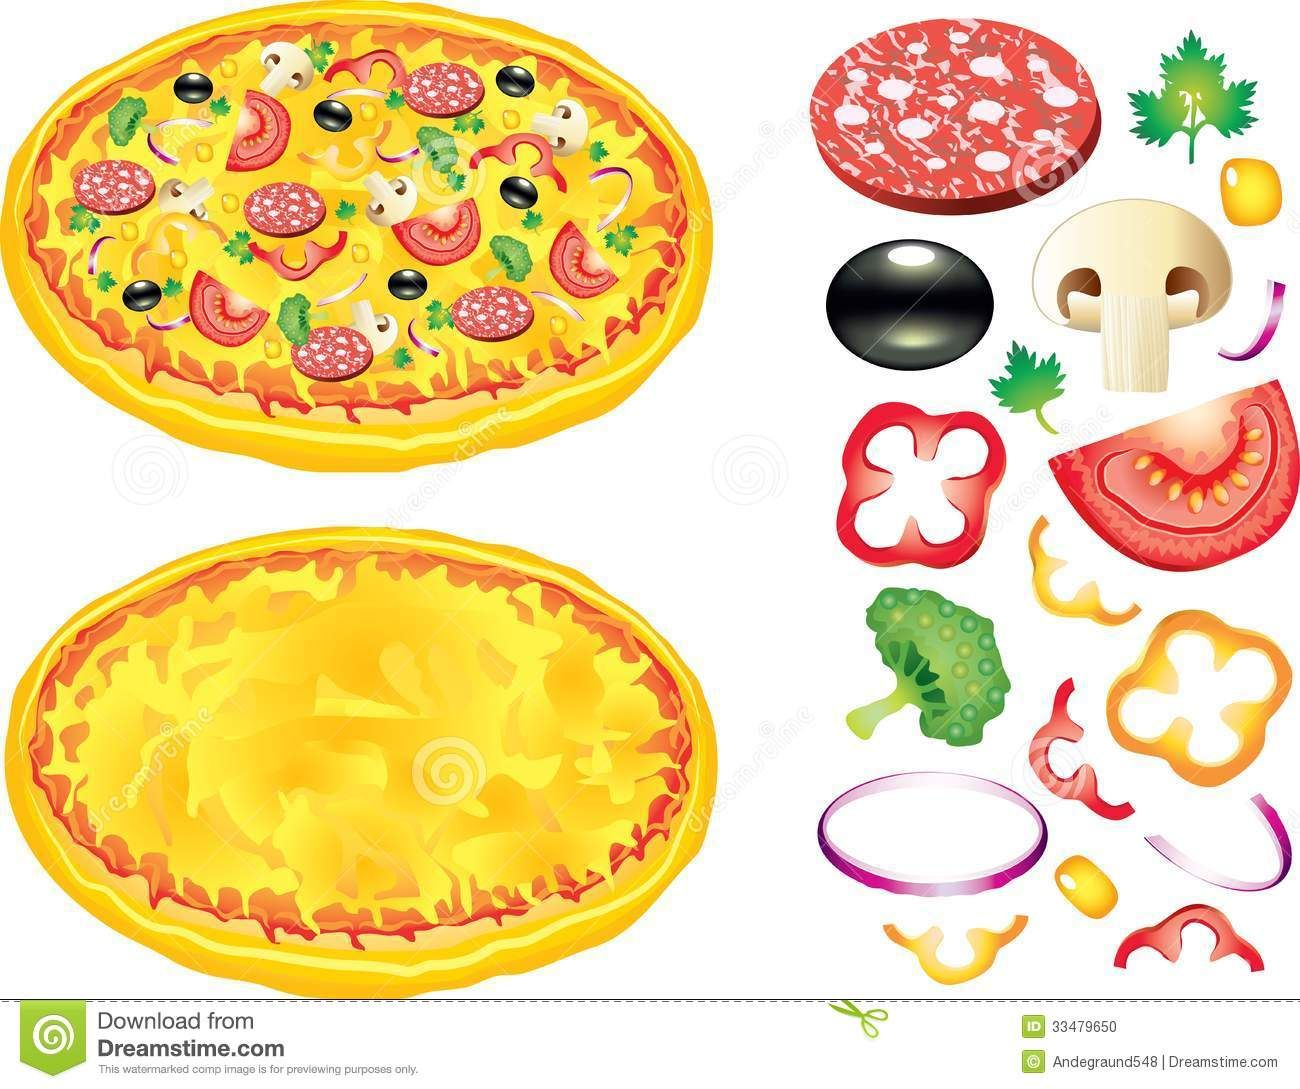 graphic about Printable Pizza Toppings named Pizza Toppings Clip Artwork Cost-free Printables Pizza, Pizza artwork